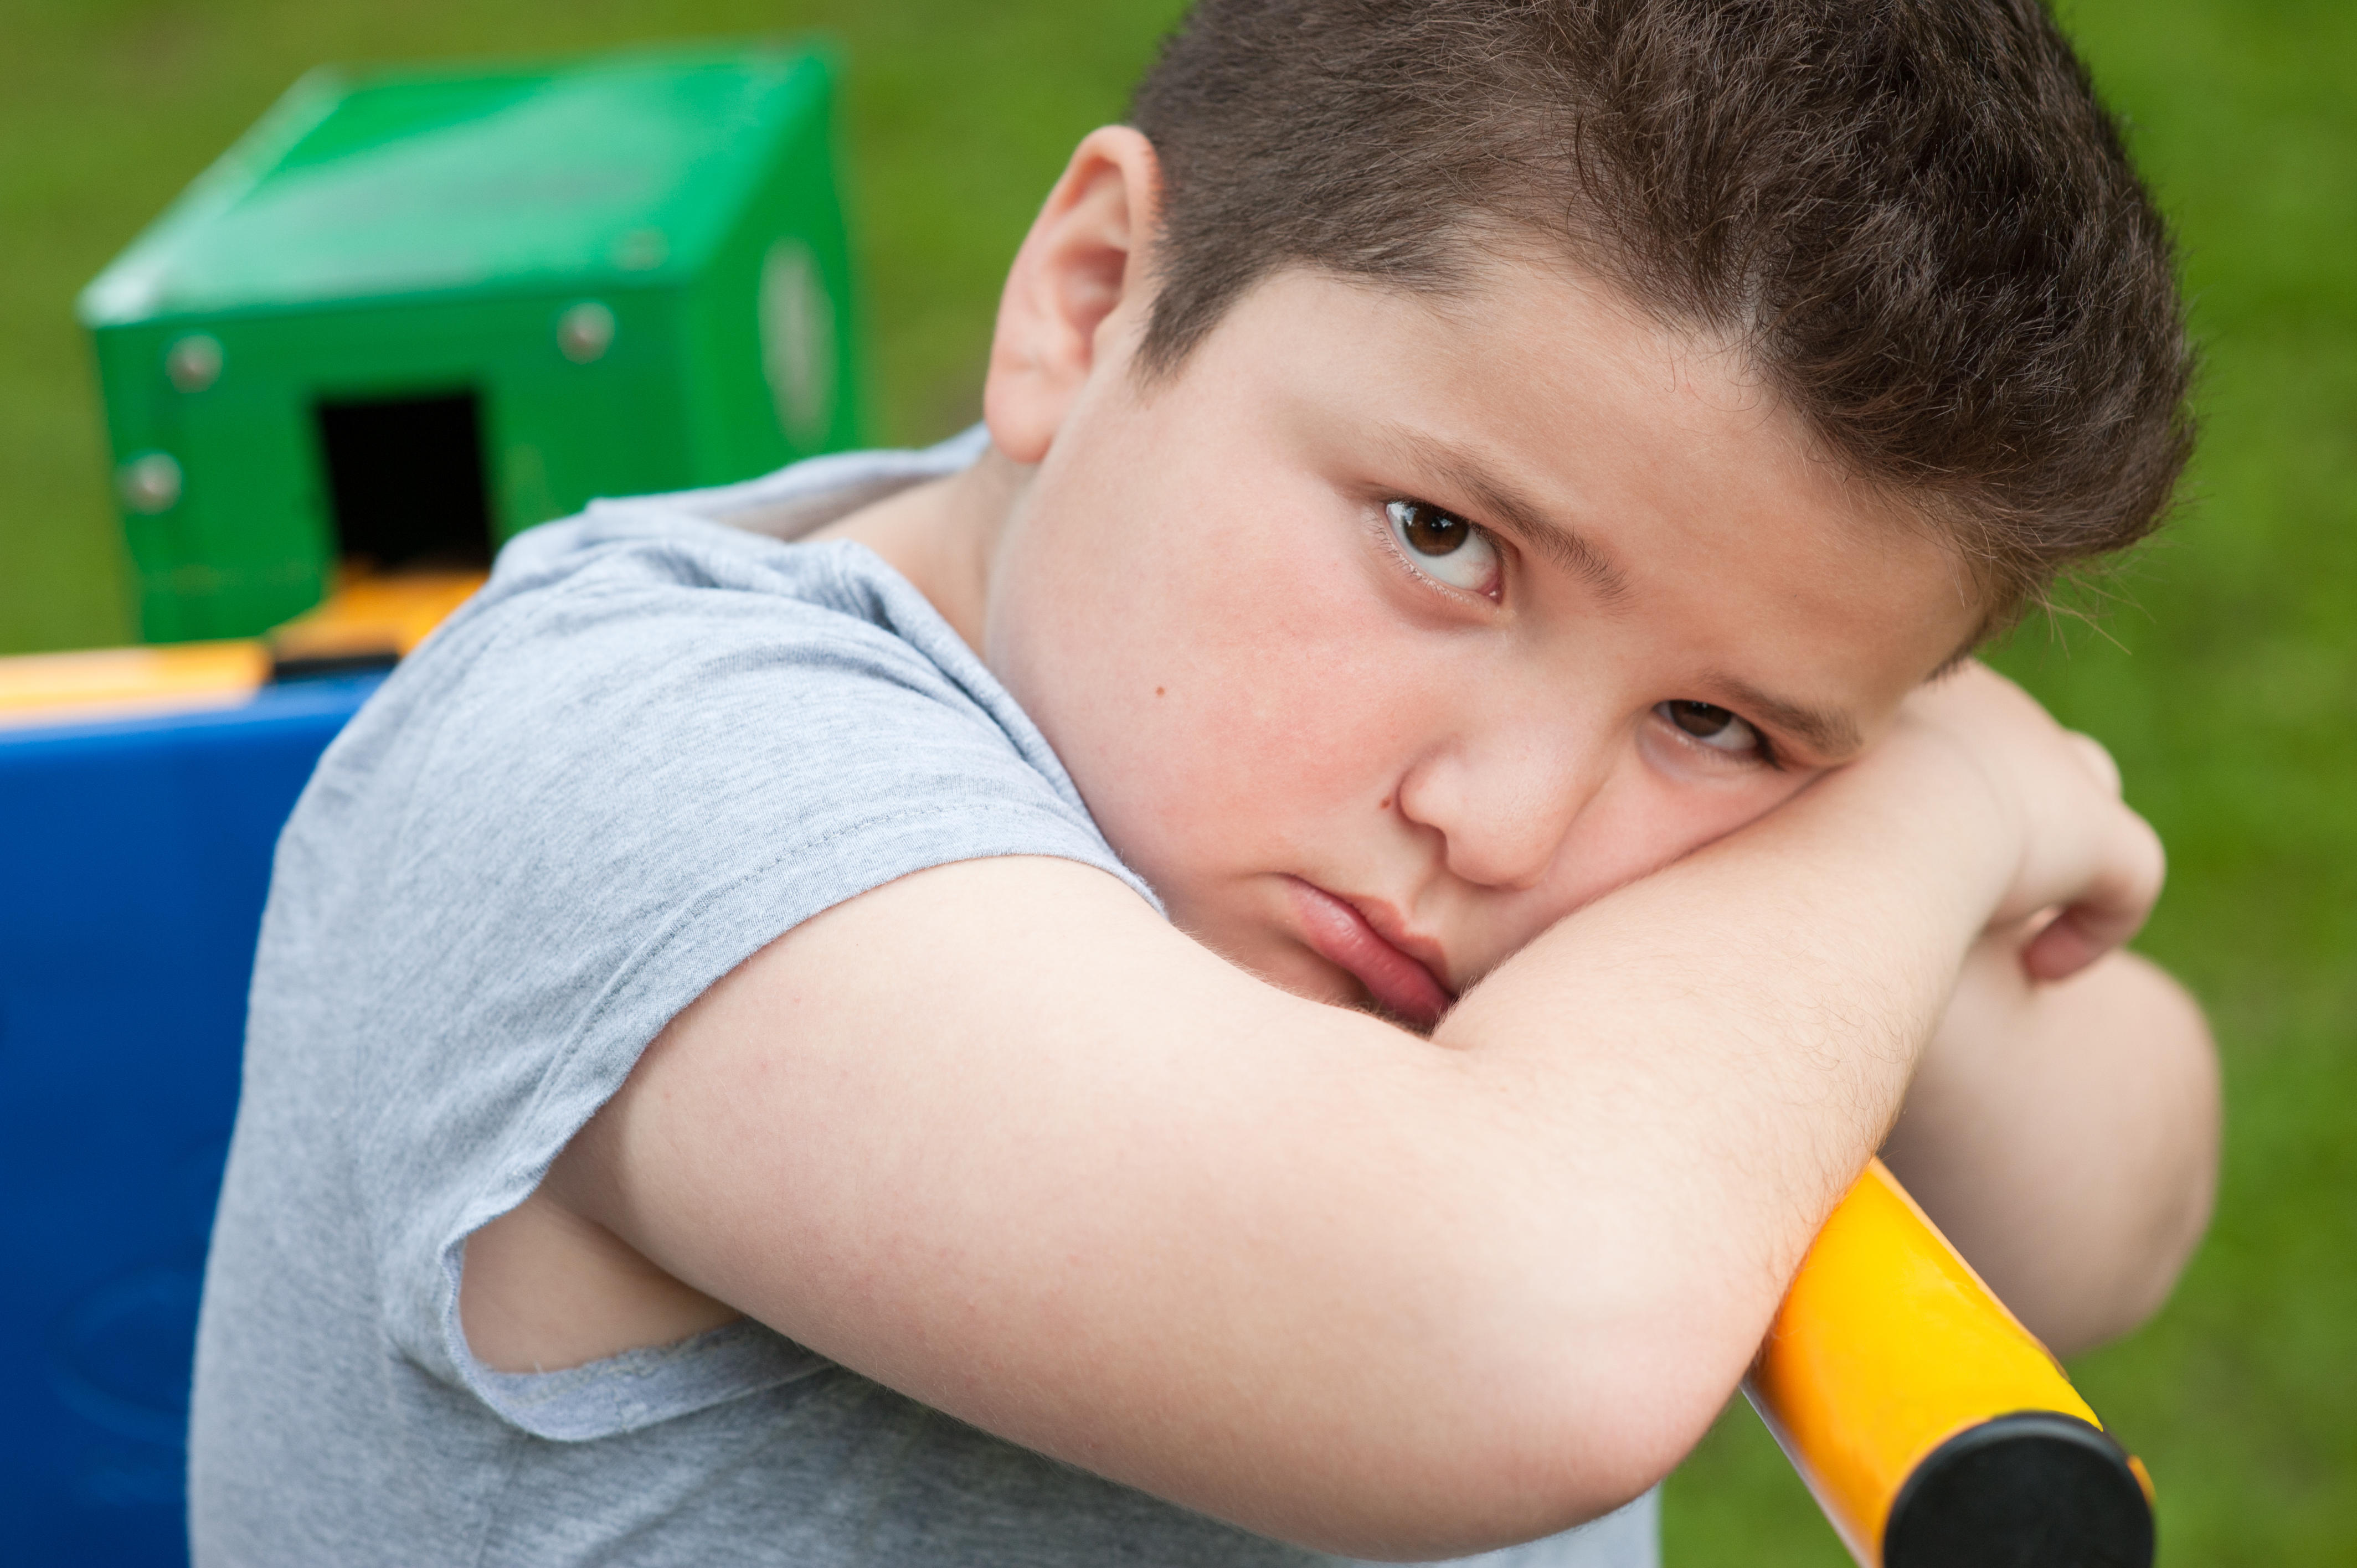 Helping Childrean At High Risk For >> Overweight Kids Face Higher Risk For Depression As Adults Cbs News